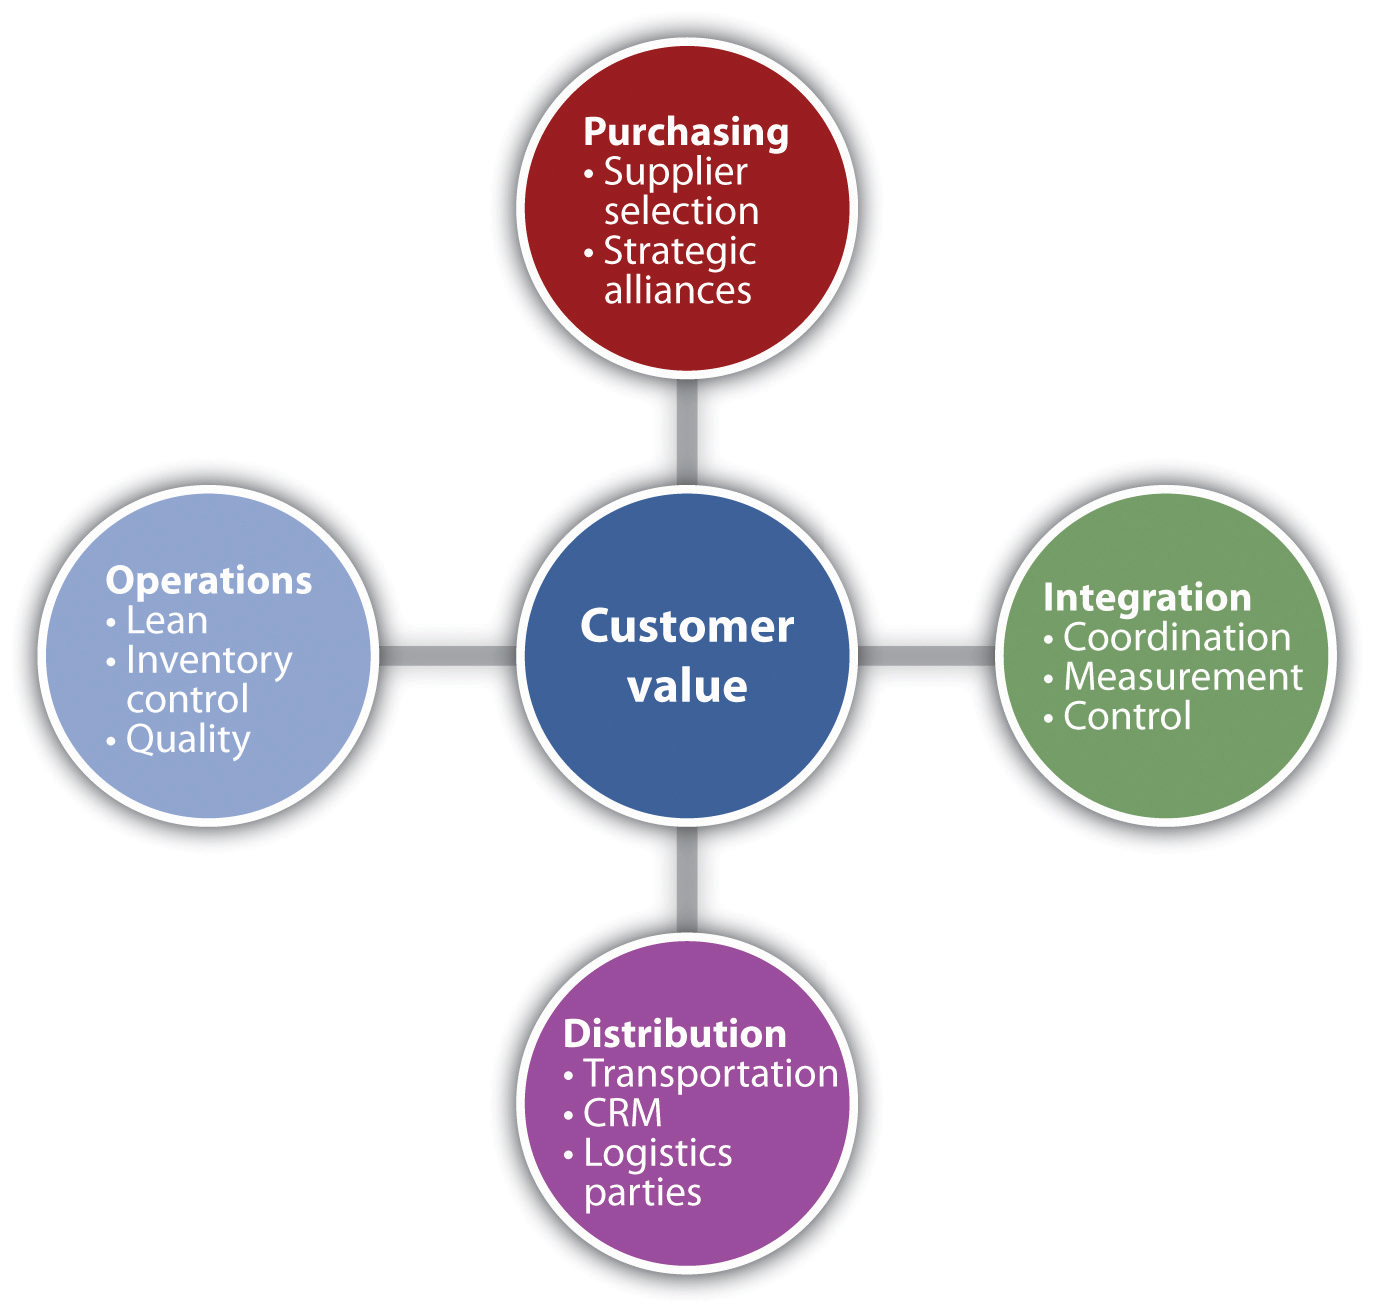 the customer relationship in supply chain management essay What is supply chain management (scm) supply chain management (scm) is the active management of supply chain activities to maximize customer value and achieve a sustainable competitive advantage.